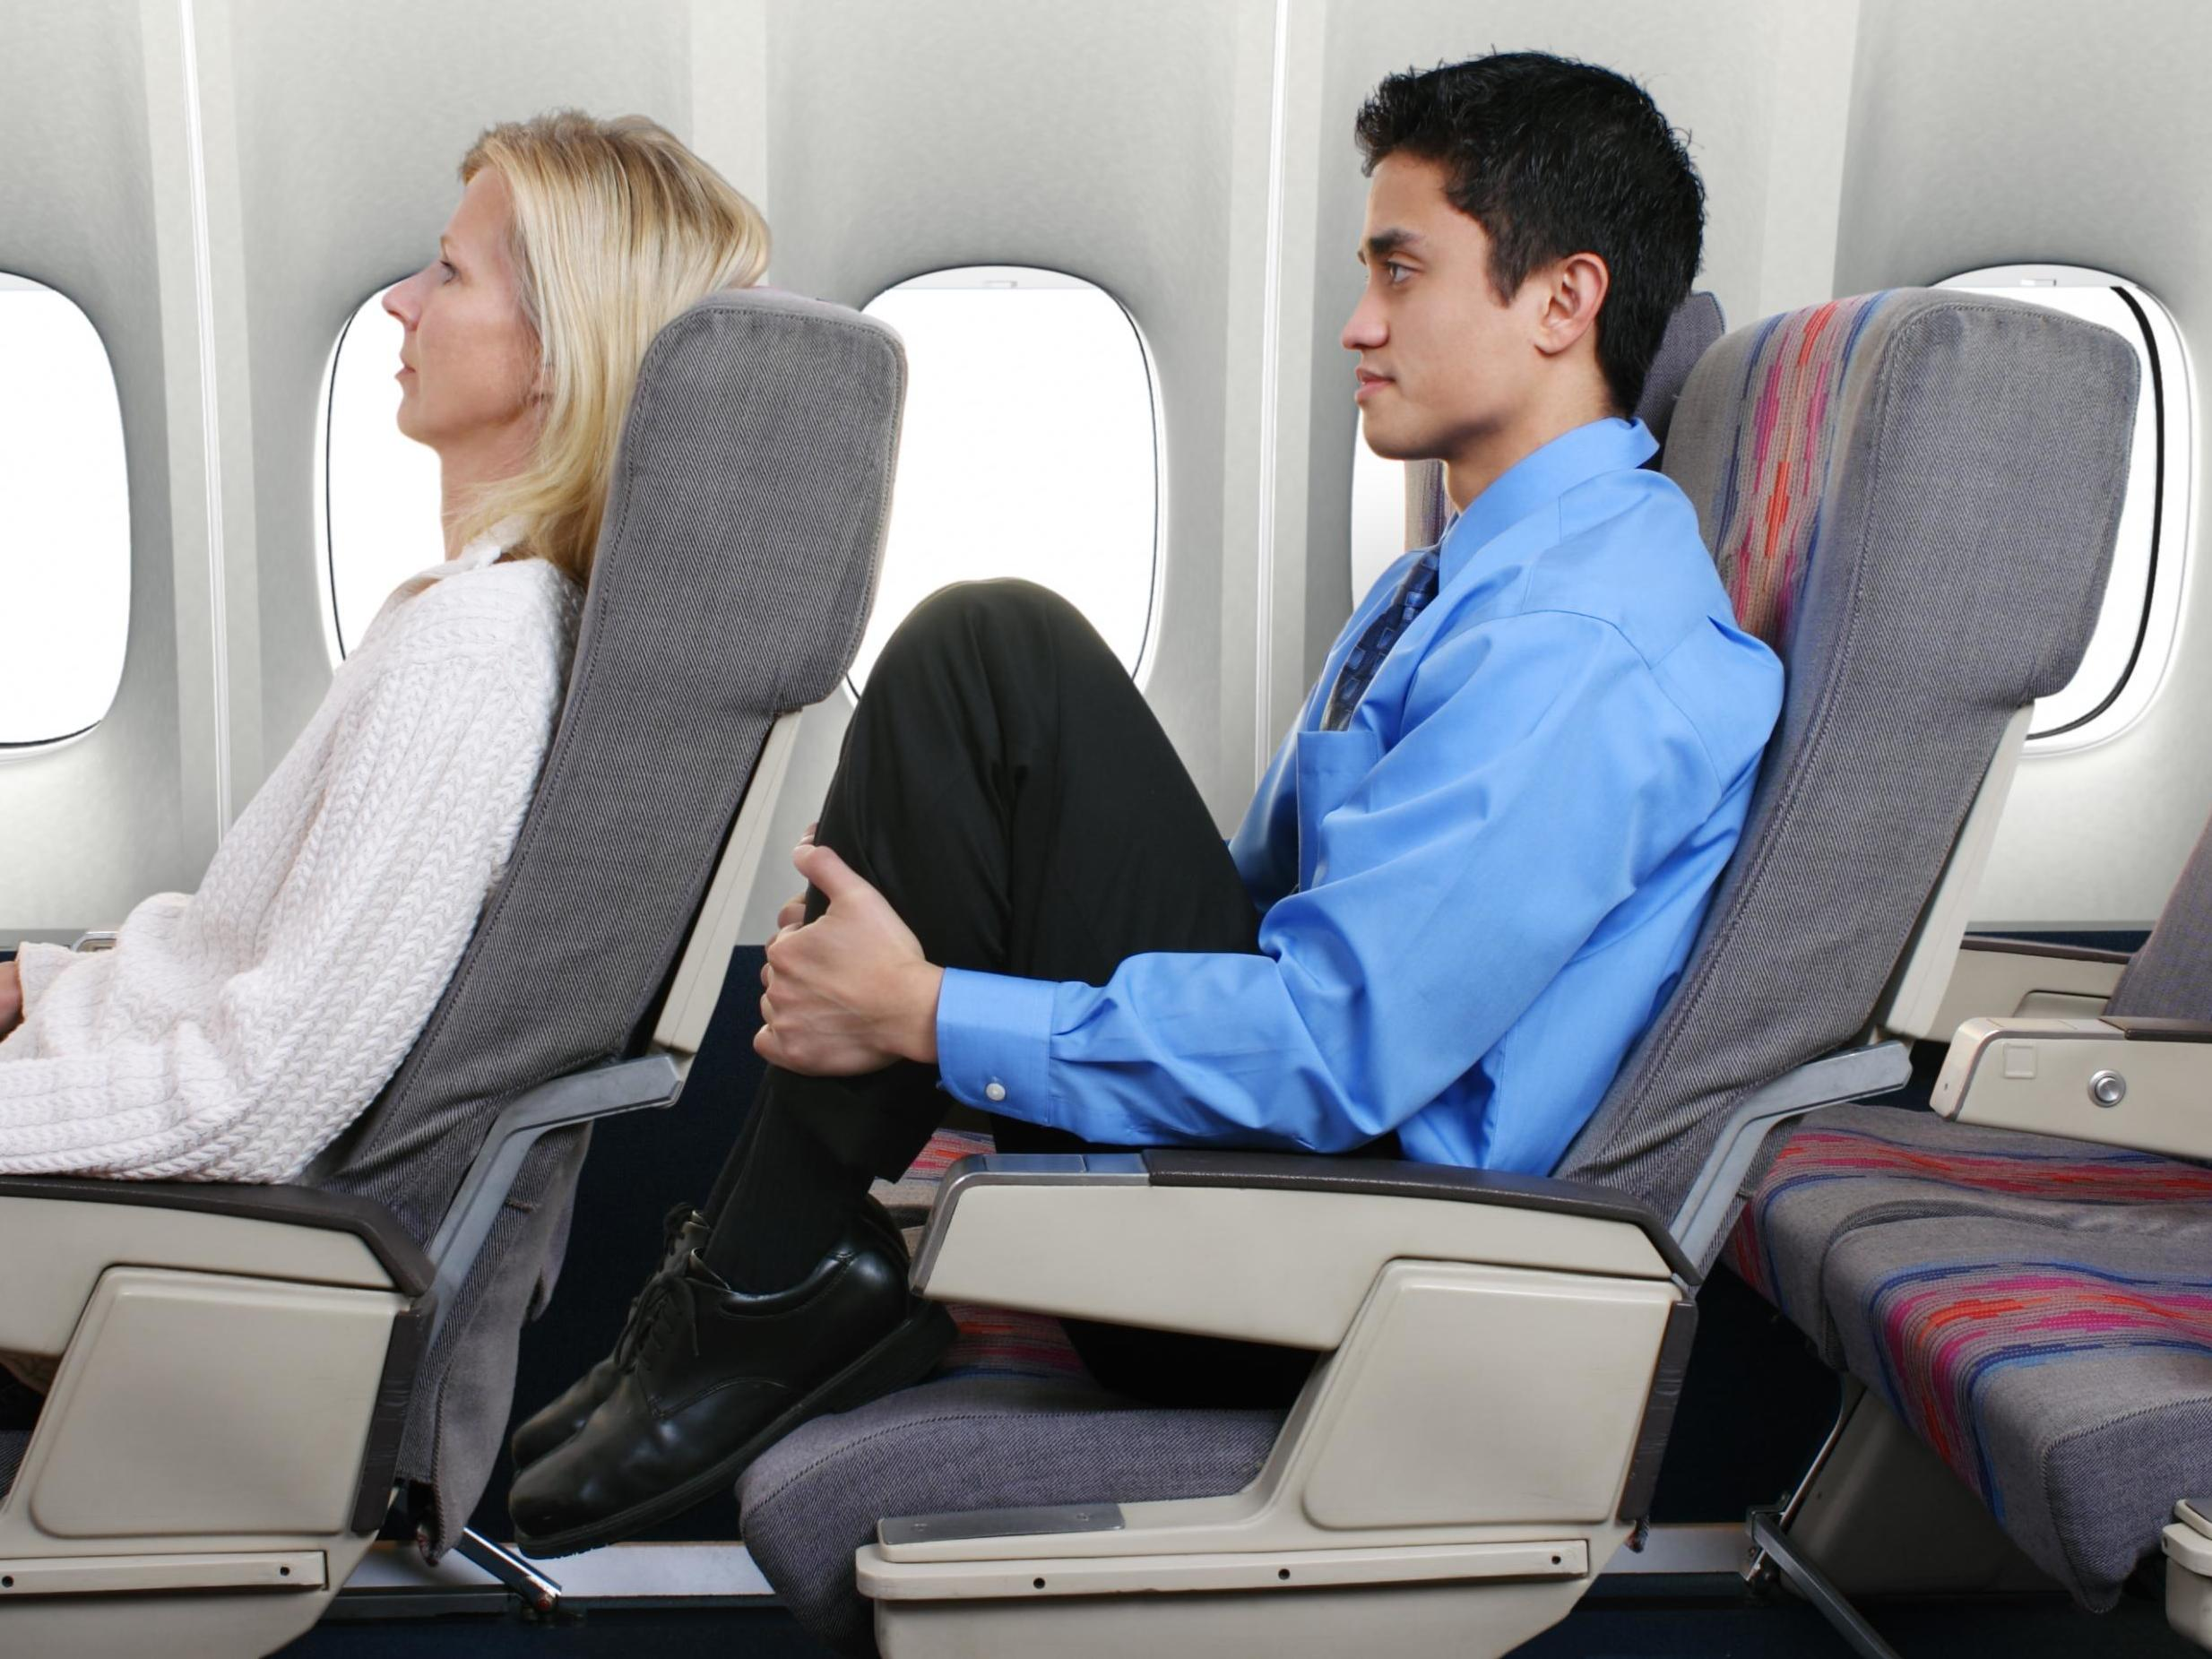 Opinion: Reclining in your plane seat is not a natural right – get some manners and seek permission first